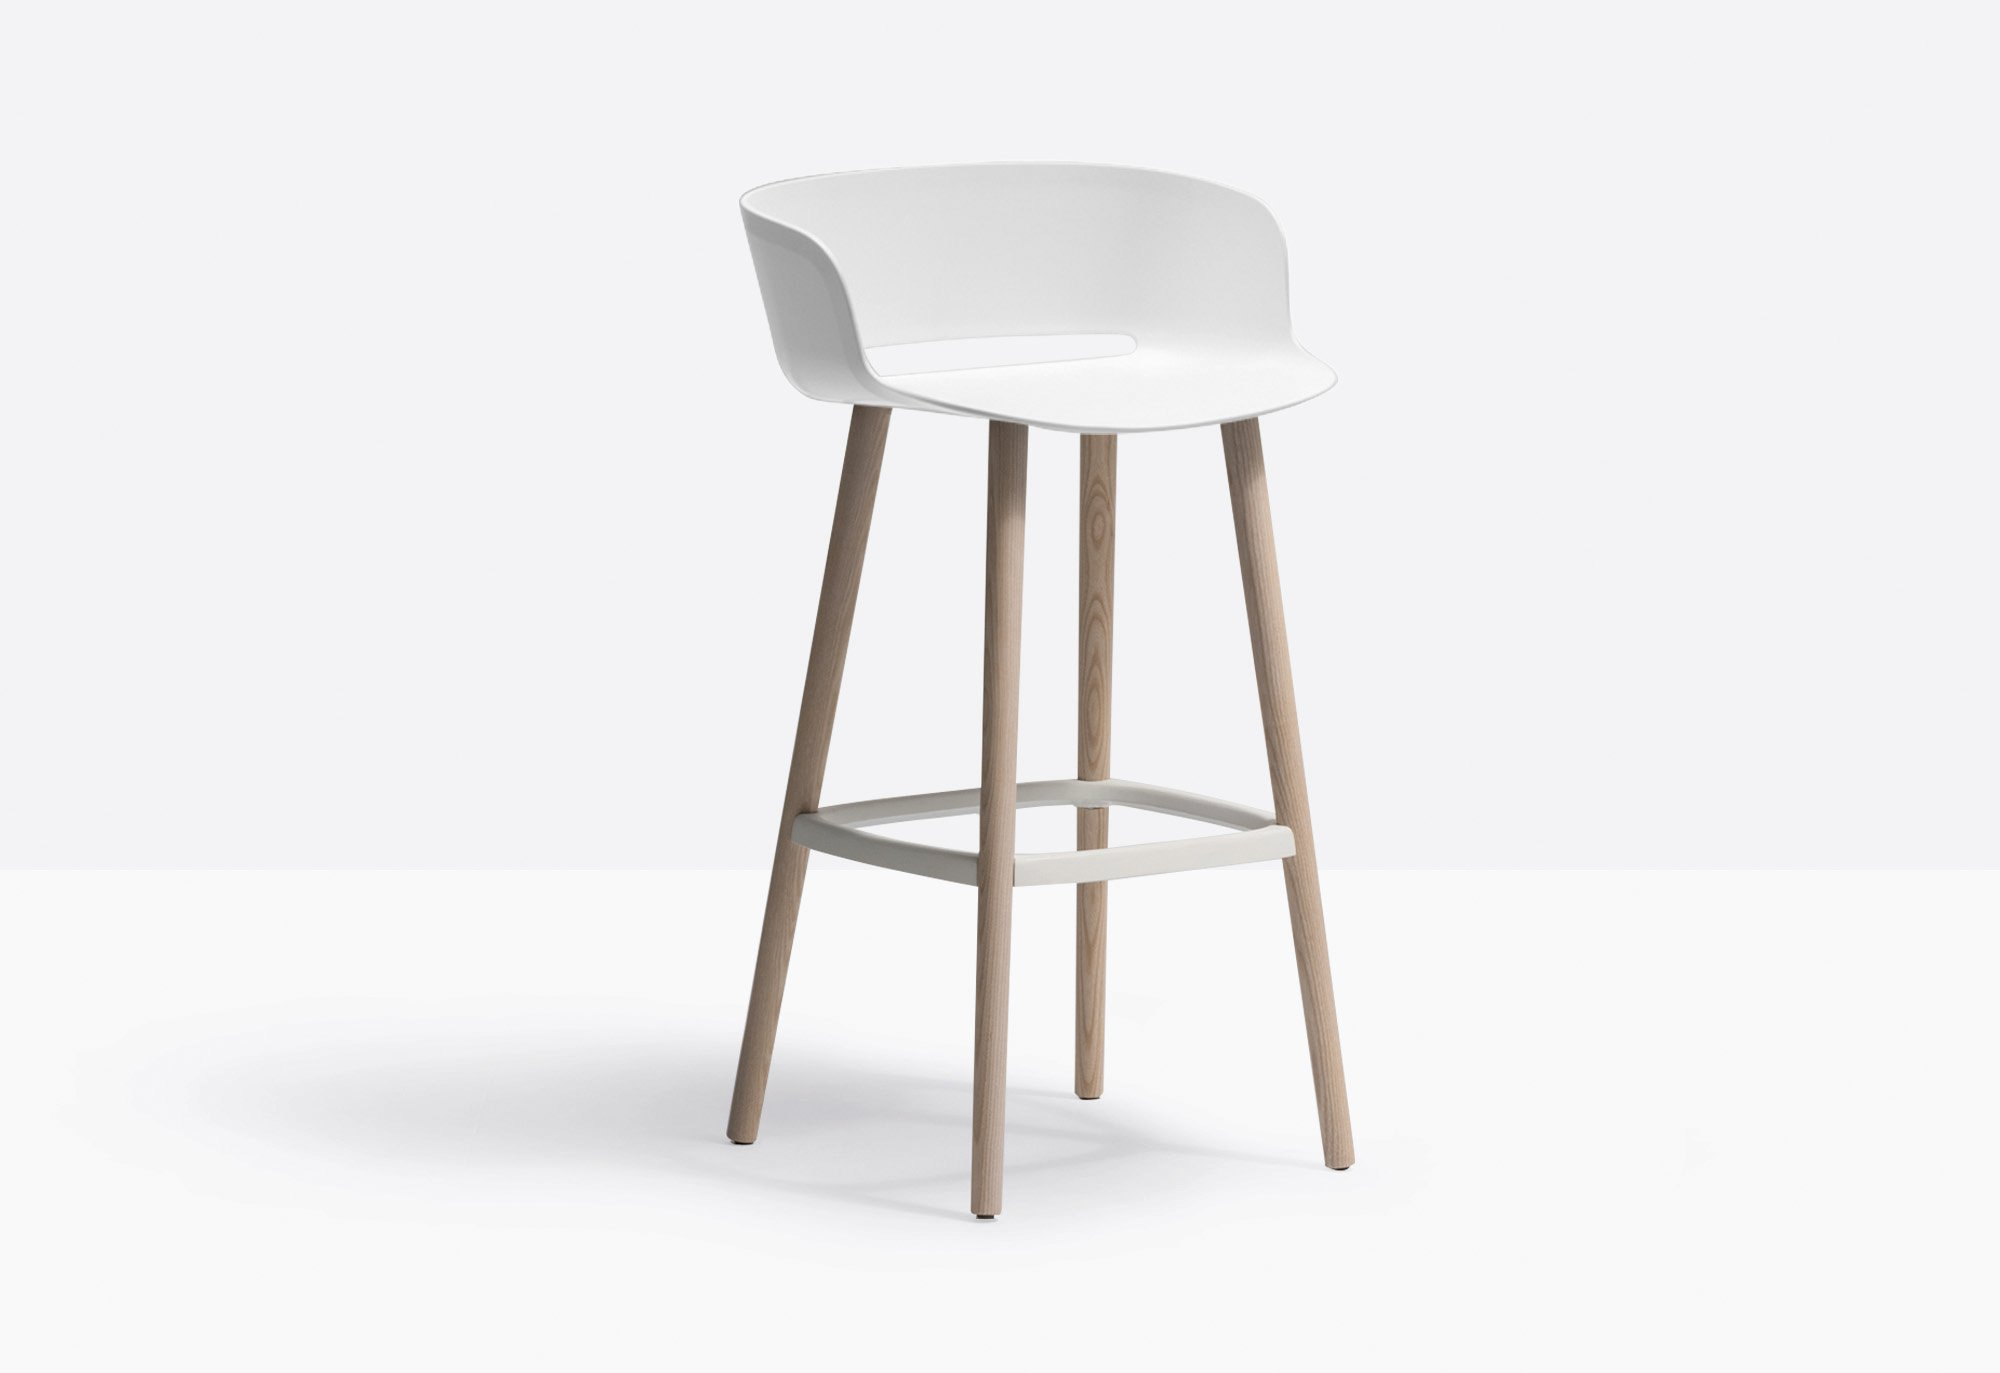 Babila 2758 Barstool from Pedrali, designed by Odoardo Fioravanti